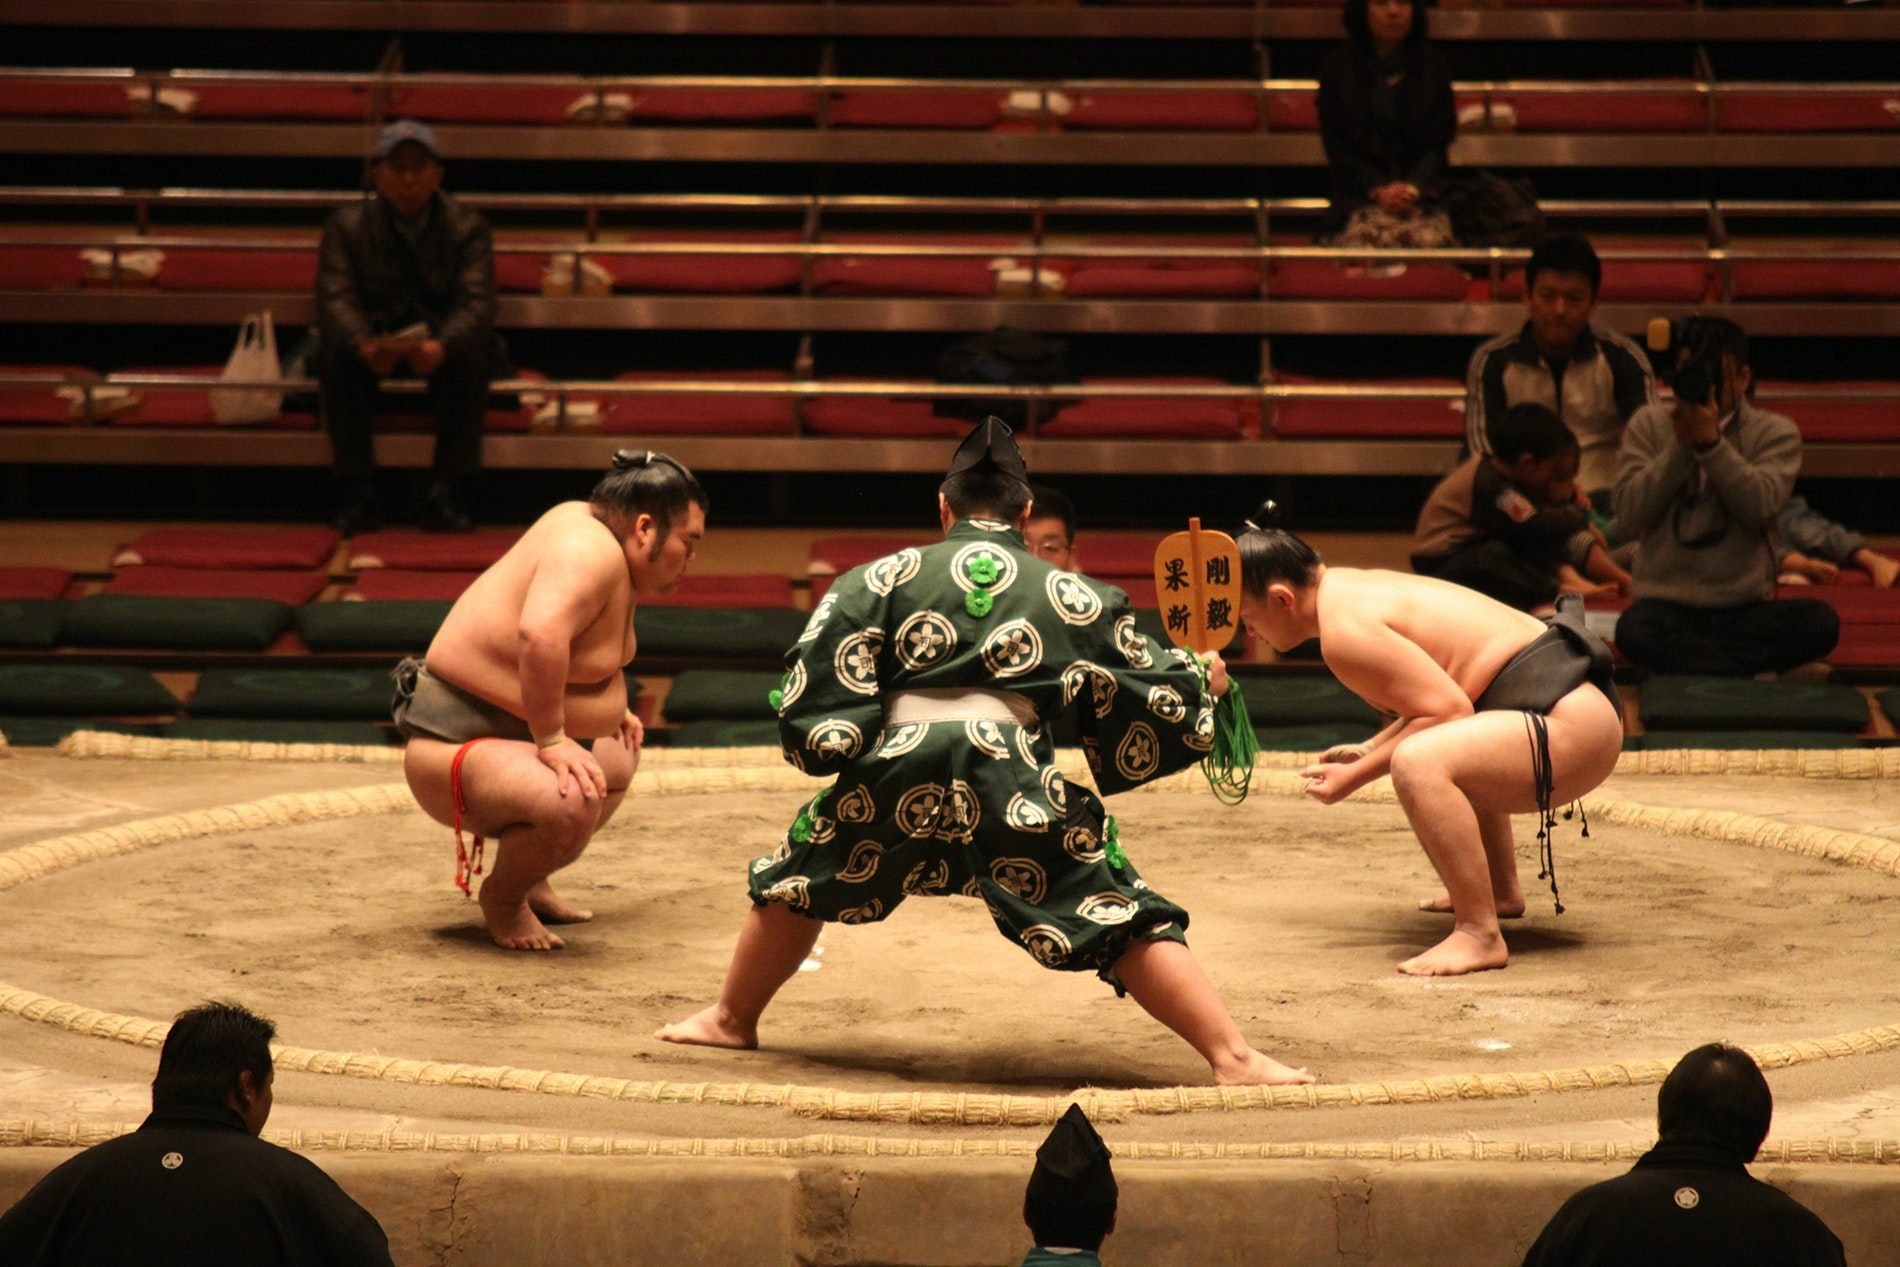 What started as a Shinto ritual has become Japan's national sport.